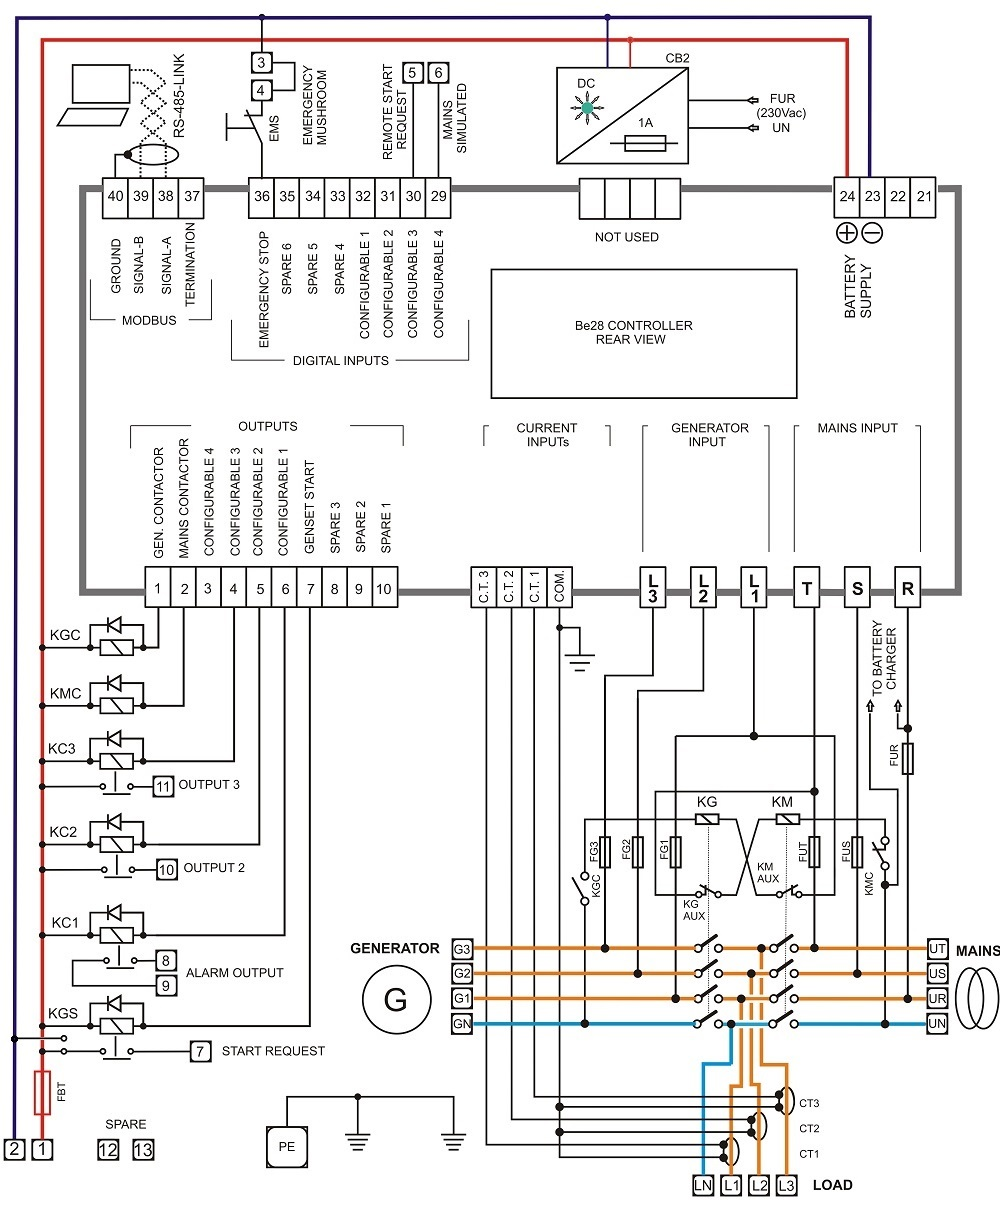 medium resolution of ats panel wiring diagram free download simple wiring post box wiring diagram ats panel wiring diagram